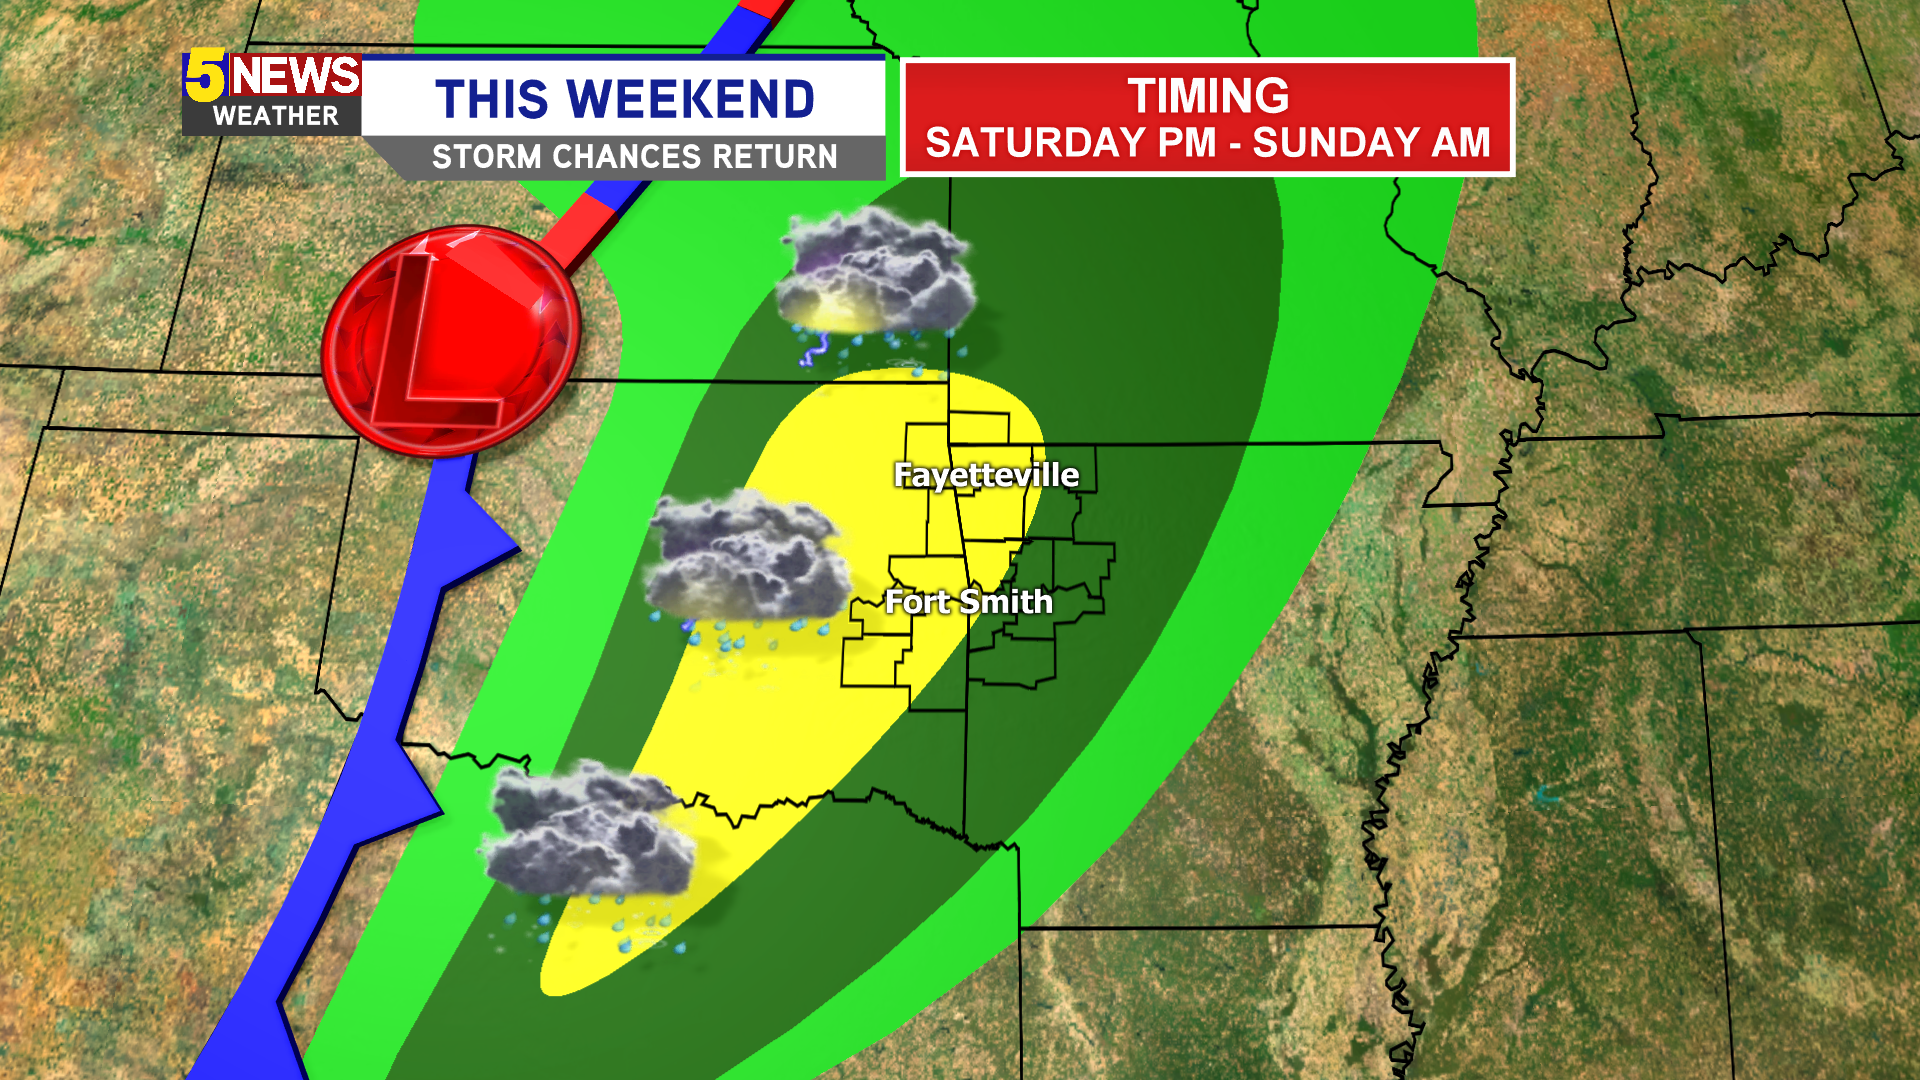 Early Look At Weekend Storm Potential